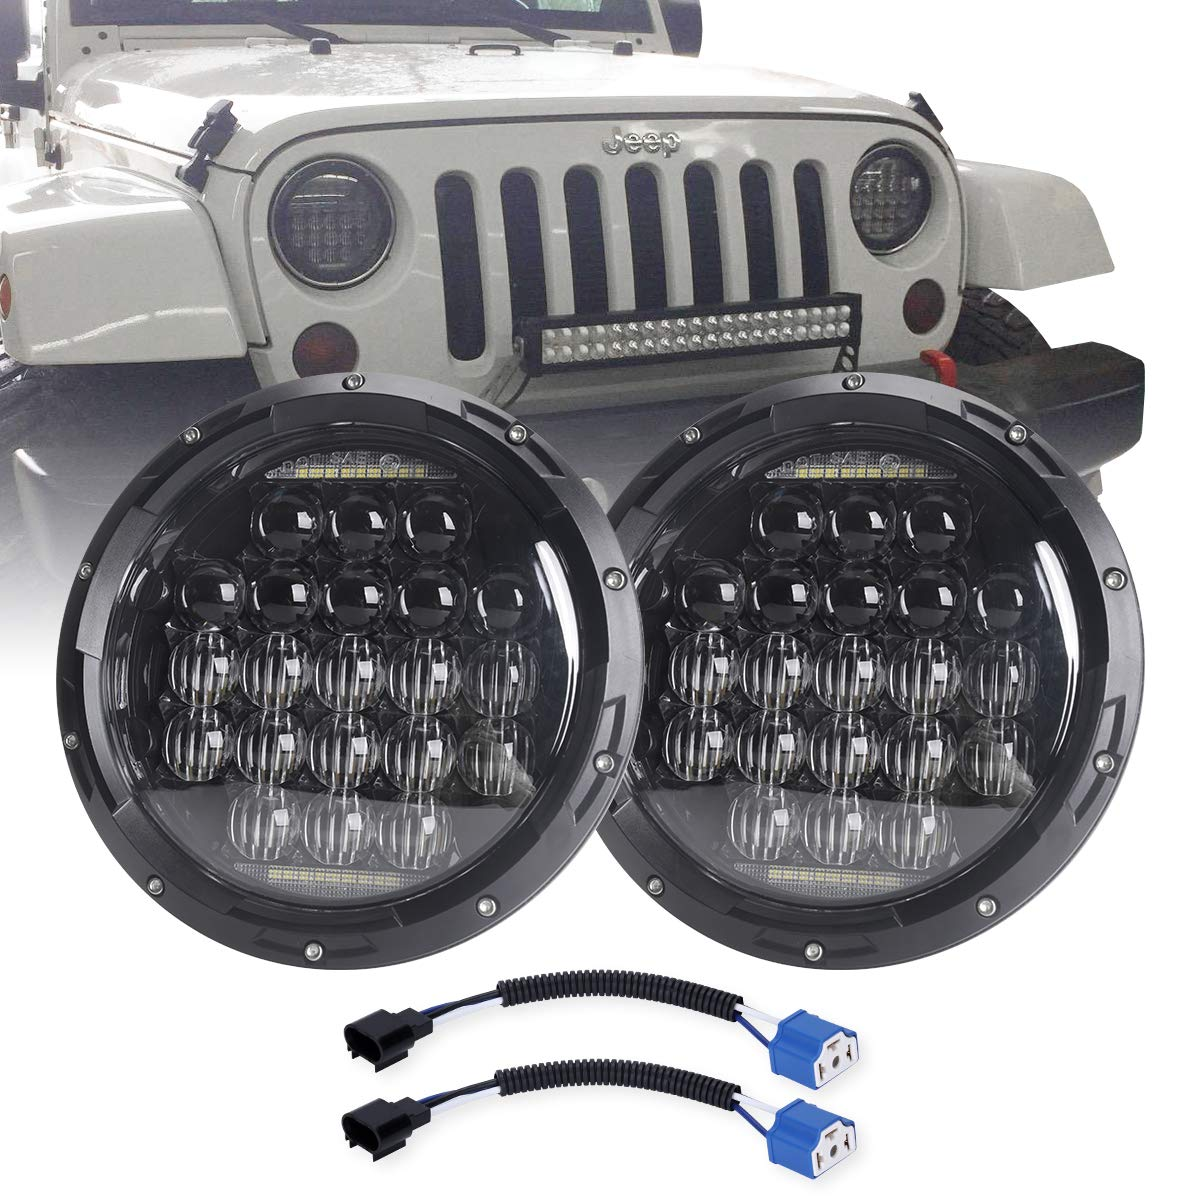 COWONE 7 Inch Round 5D 2019 Newest Design 130w LED Projector Headlight with DRL for Jeep Wrangler JK TJ LJ CJ for Harley Motorcycles by COWONE